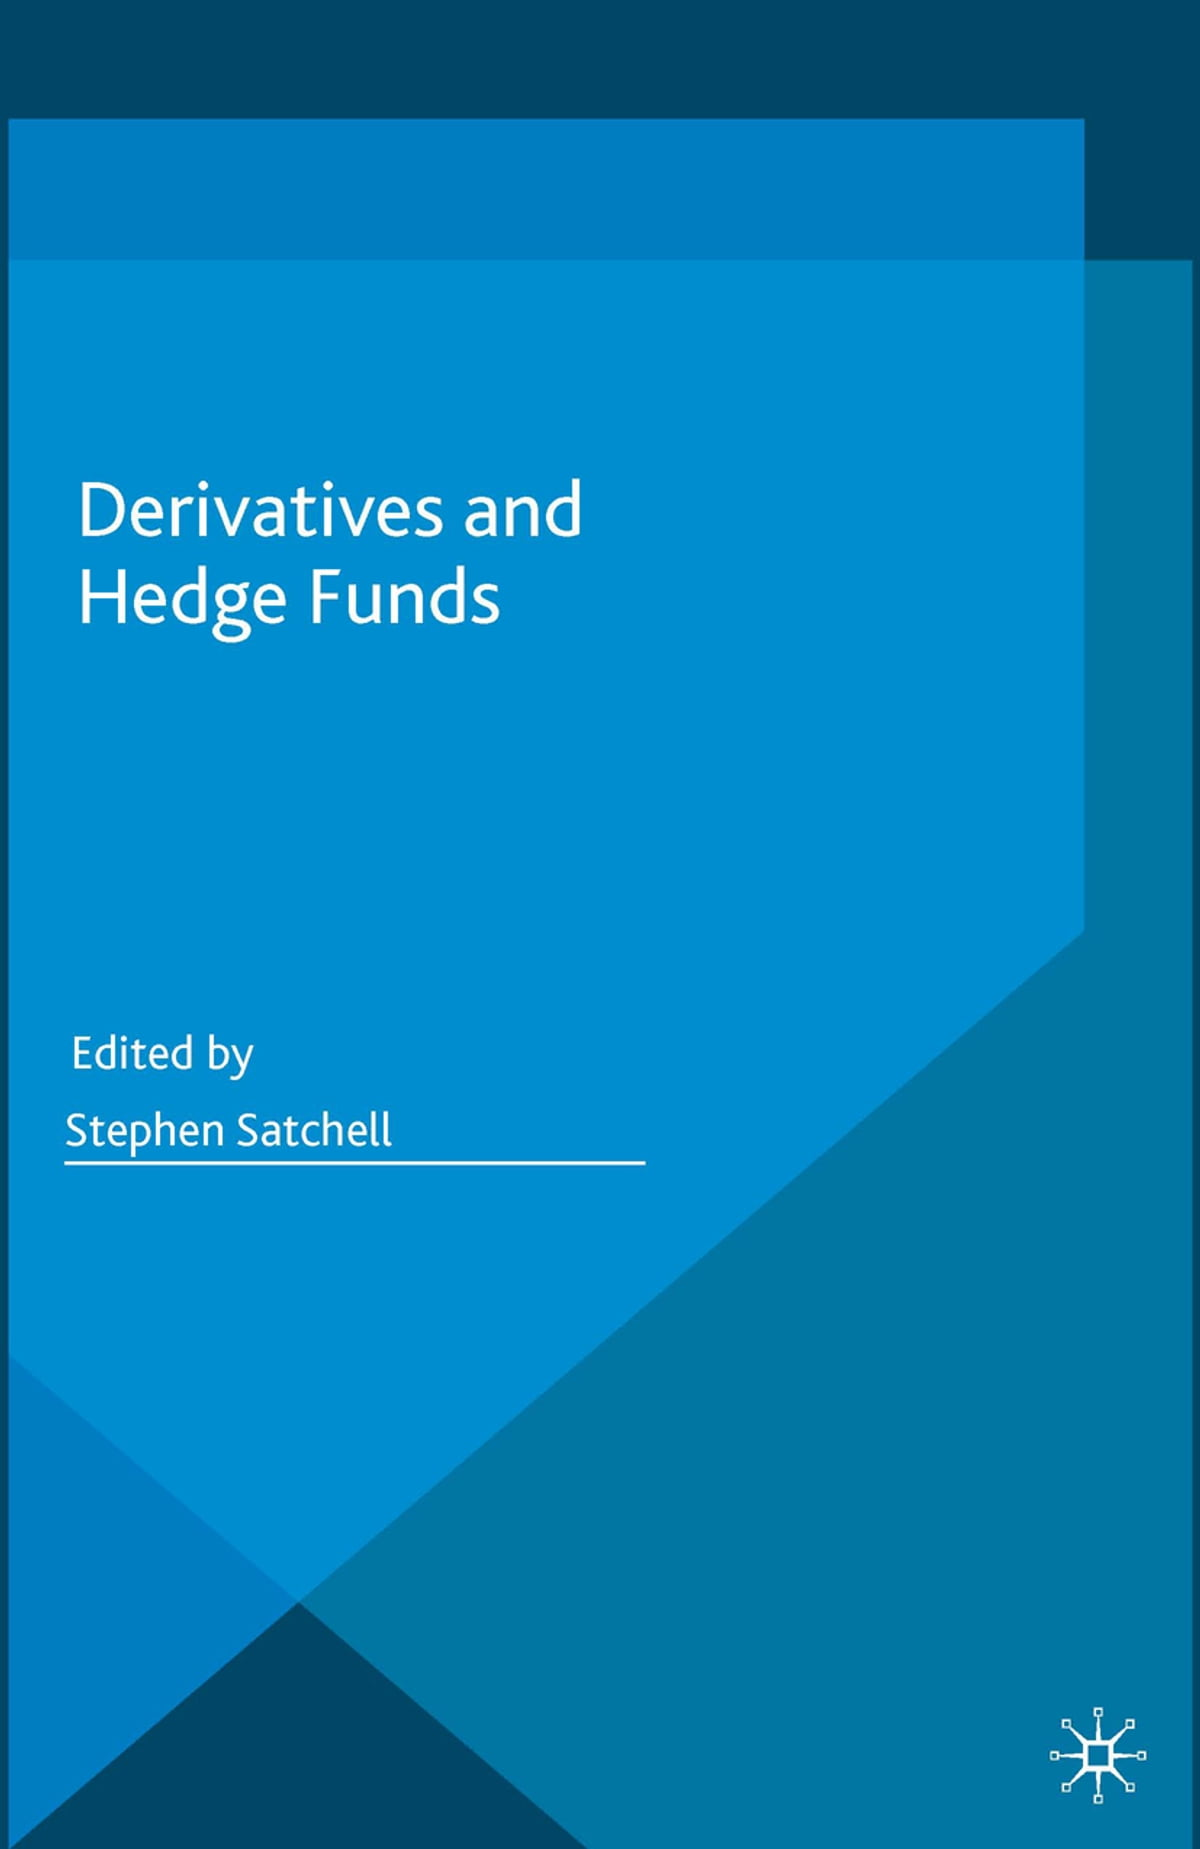 thesis on hedge funds Evaluation of hedge funds performance by jing qian a thesis submitted in partial fulfillment of the requirements for the degree of master of science.